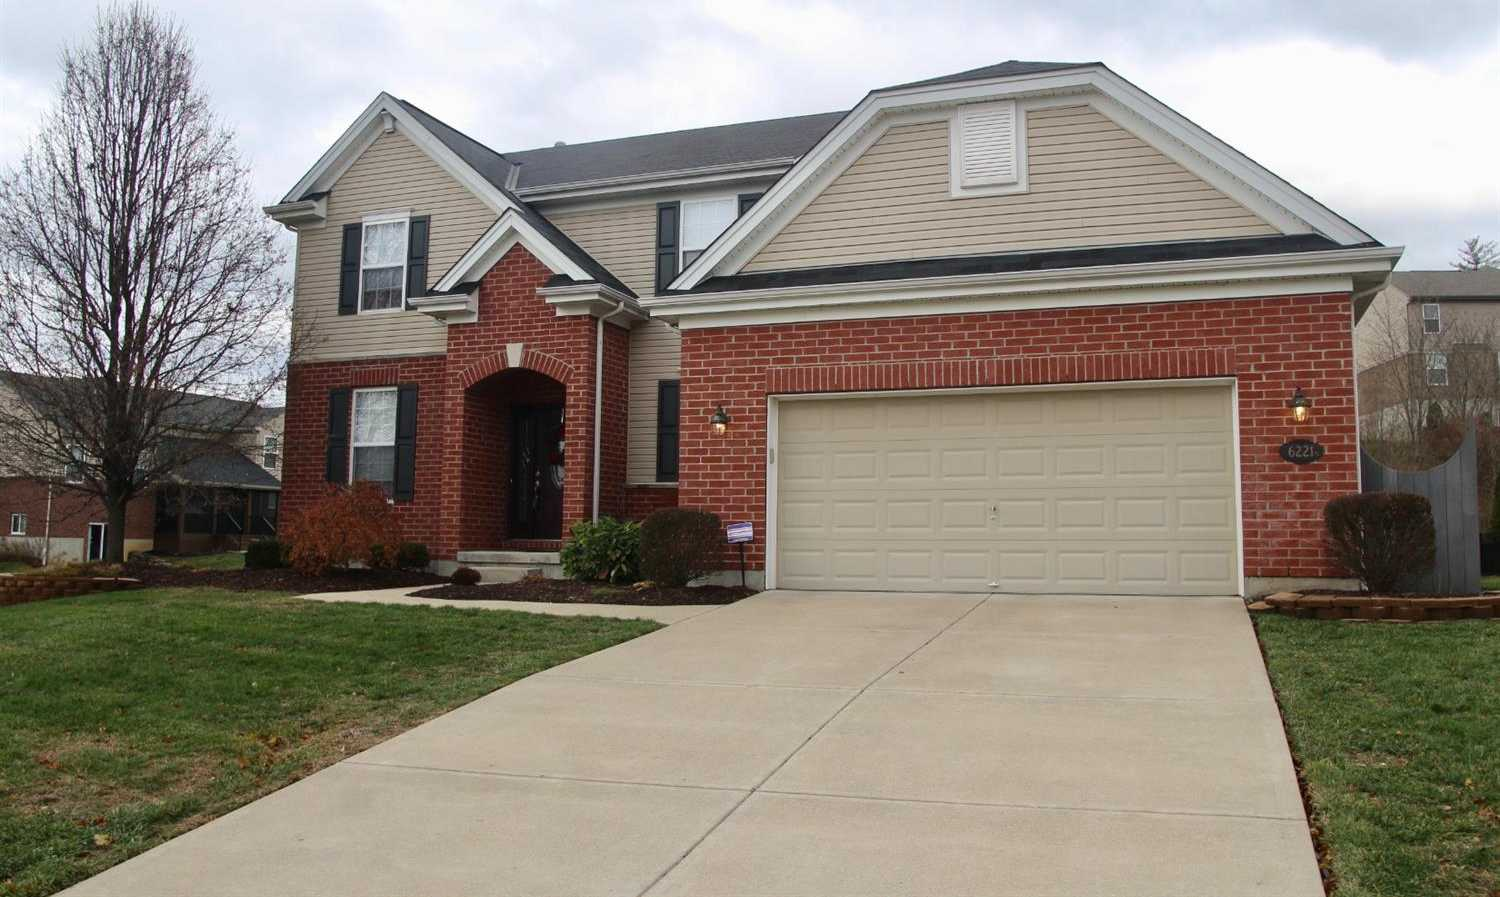 6221 Vista View Court Colerain Twp,OH 45247 1648095